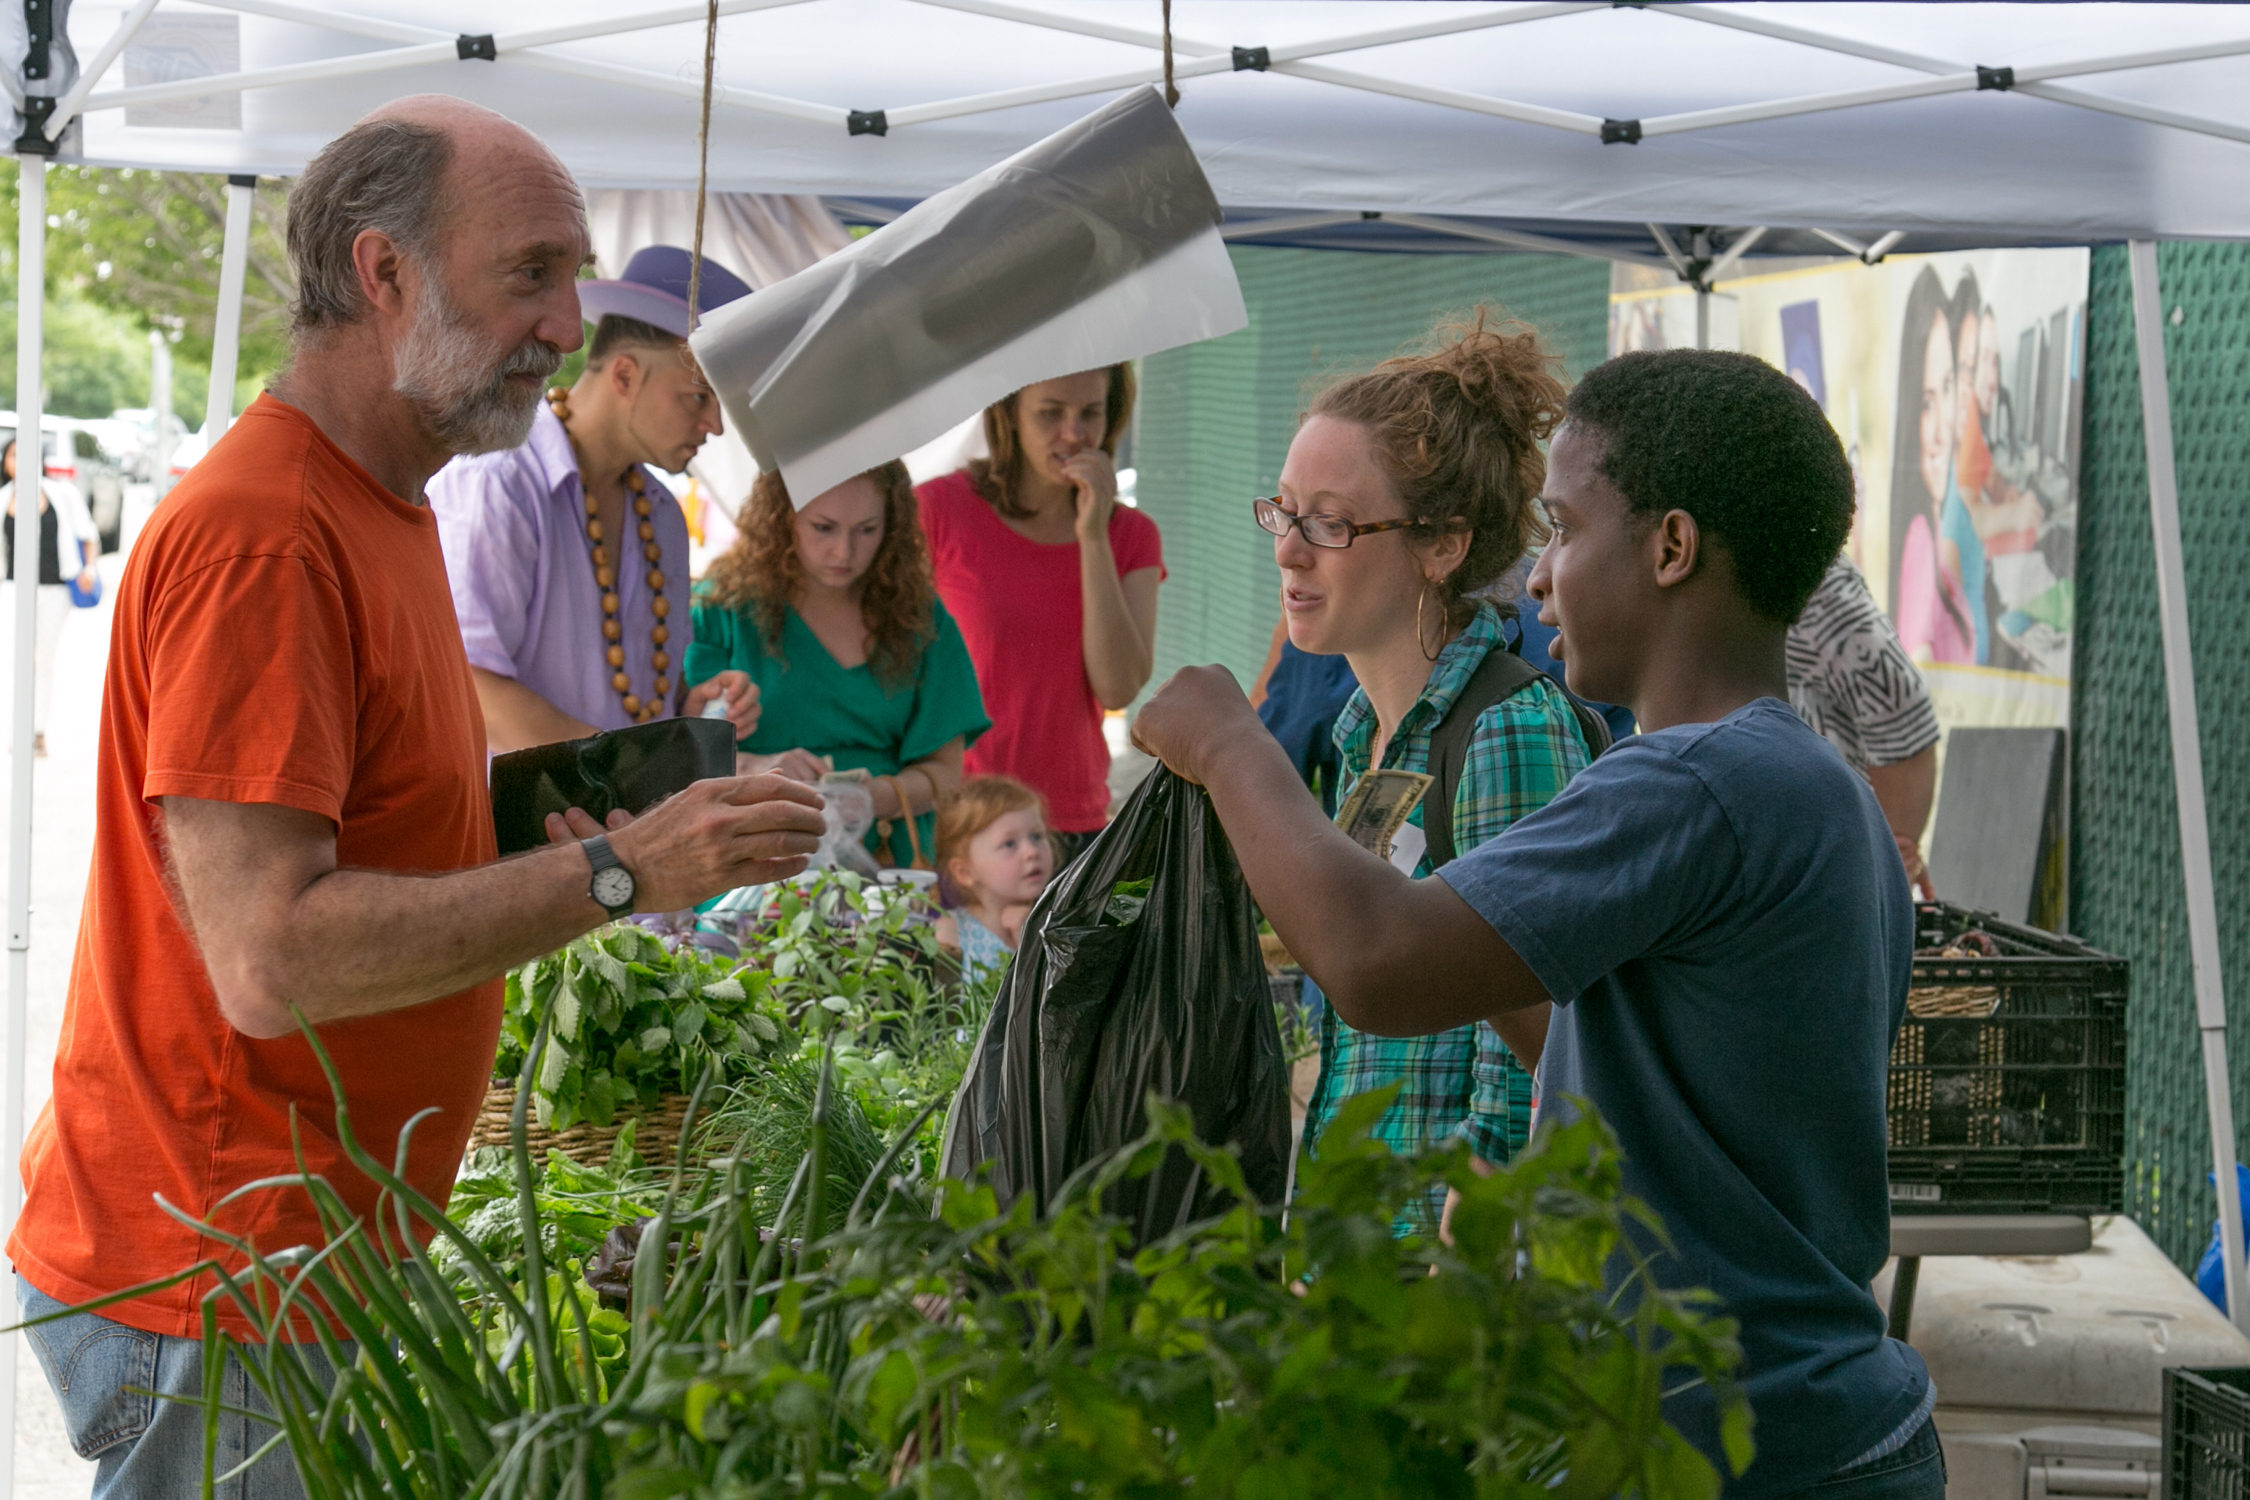 South Bronx Farmers' Market: NYC Food Based Community